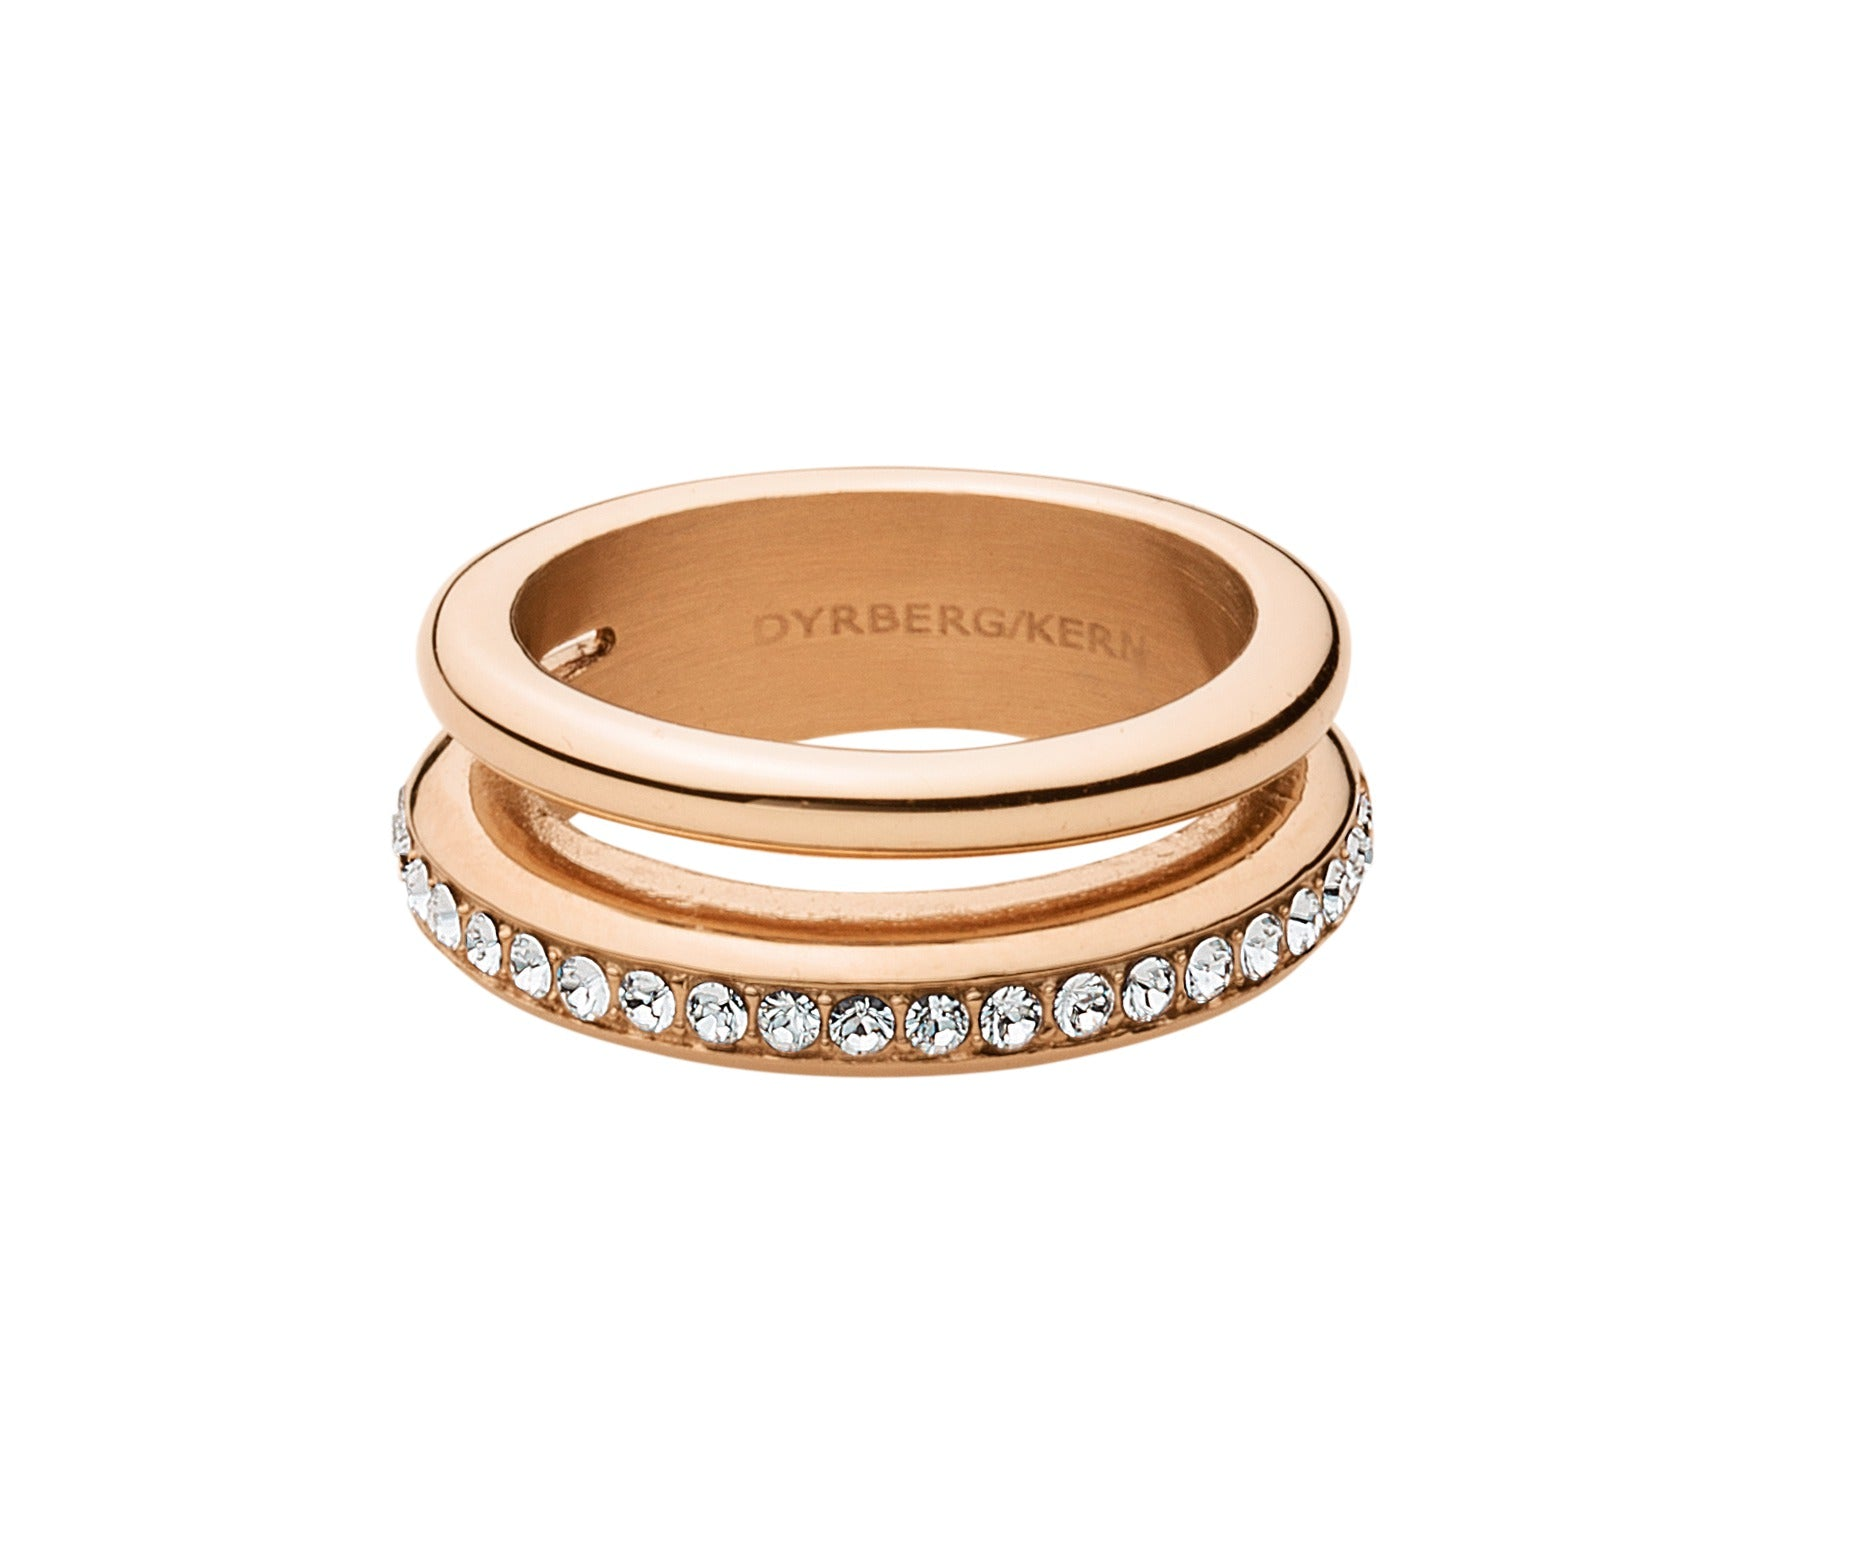 Dyrberg/Kern Ring - Tiva Rose Gold Crystal - Luxedy - 1